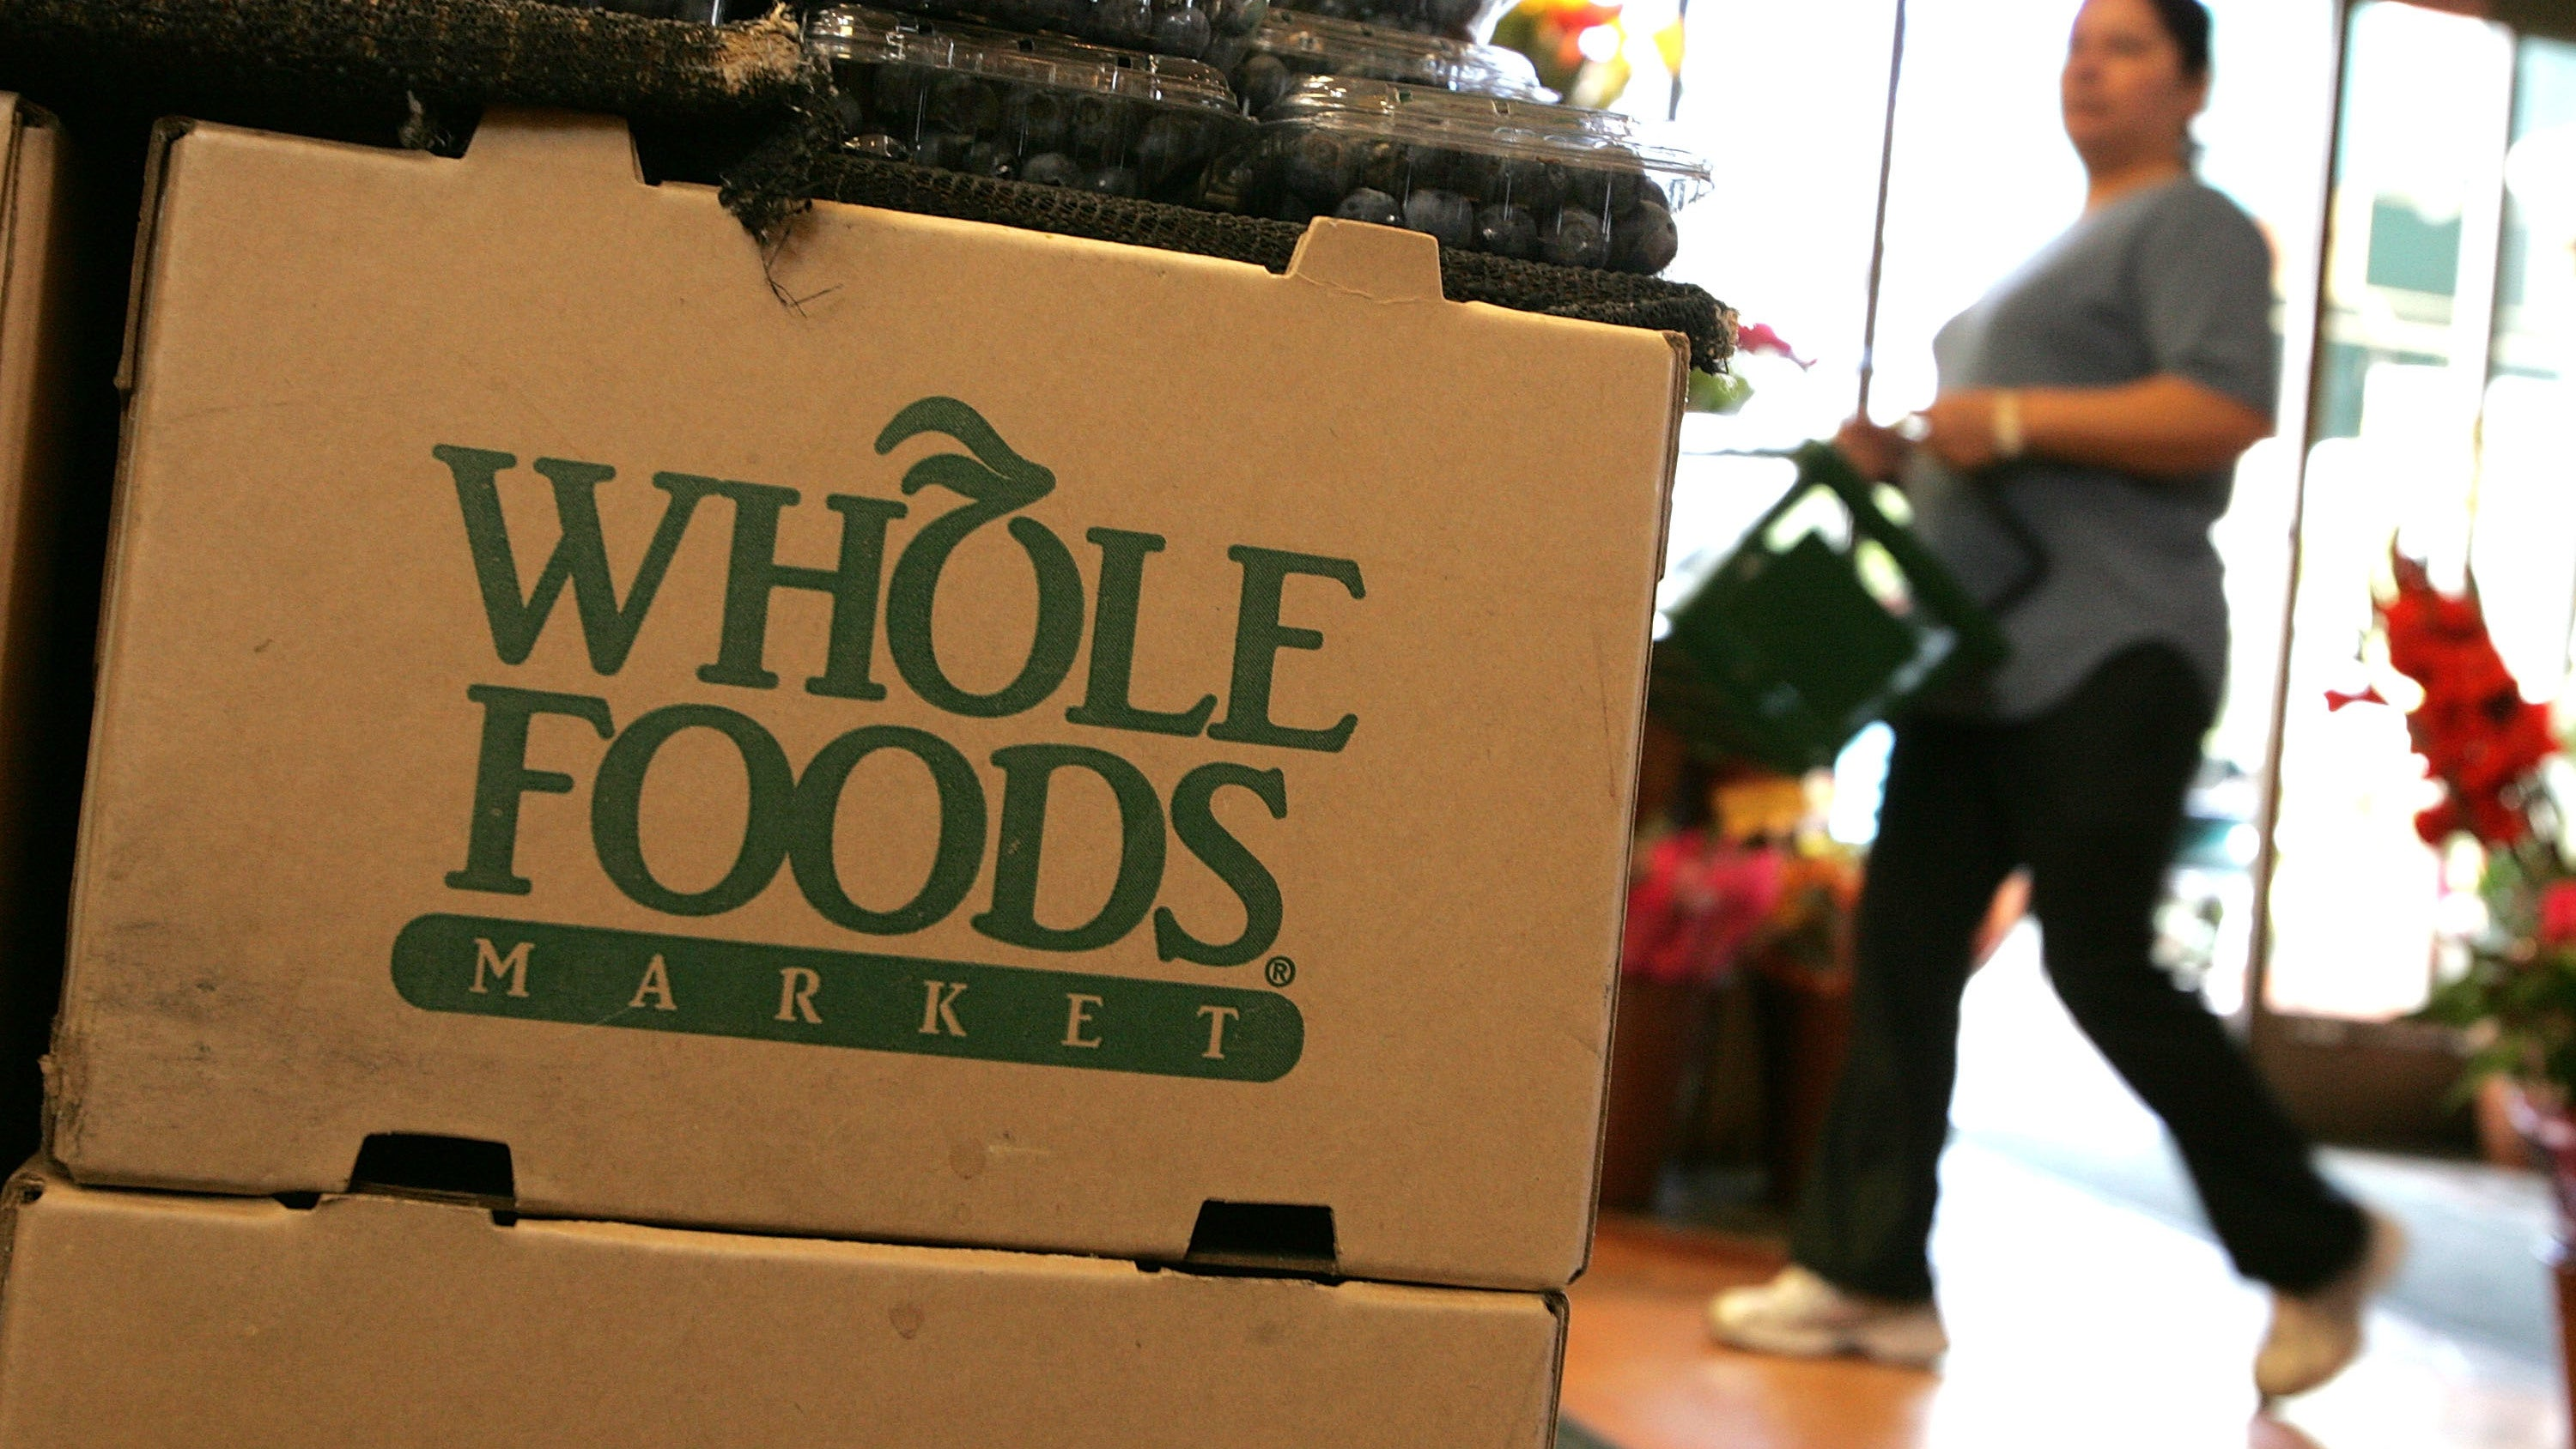 Whole Foods Is Now Selling 'Farm Fresh' Amazon Echoes In The US